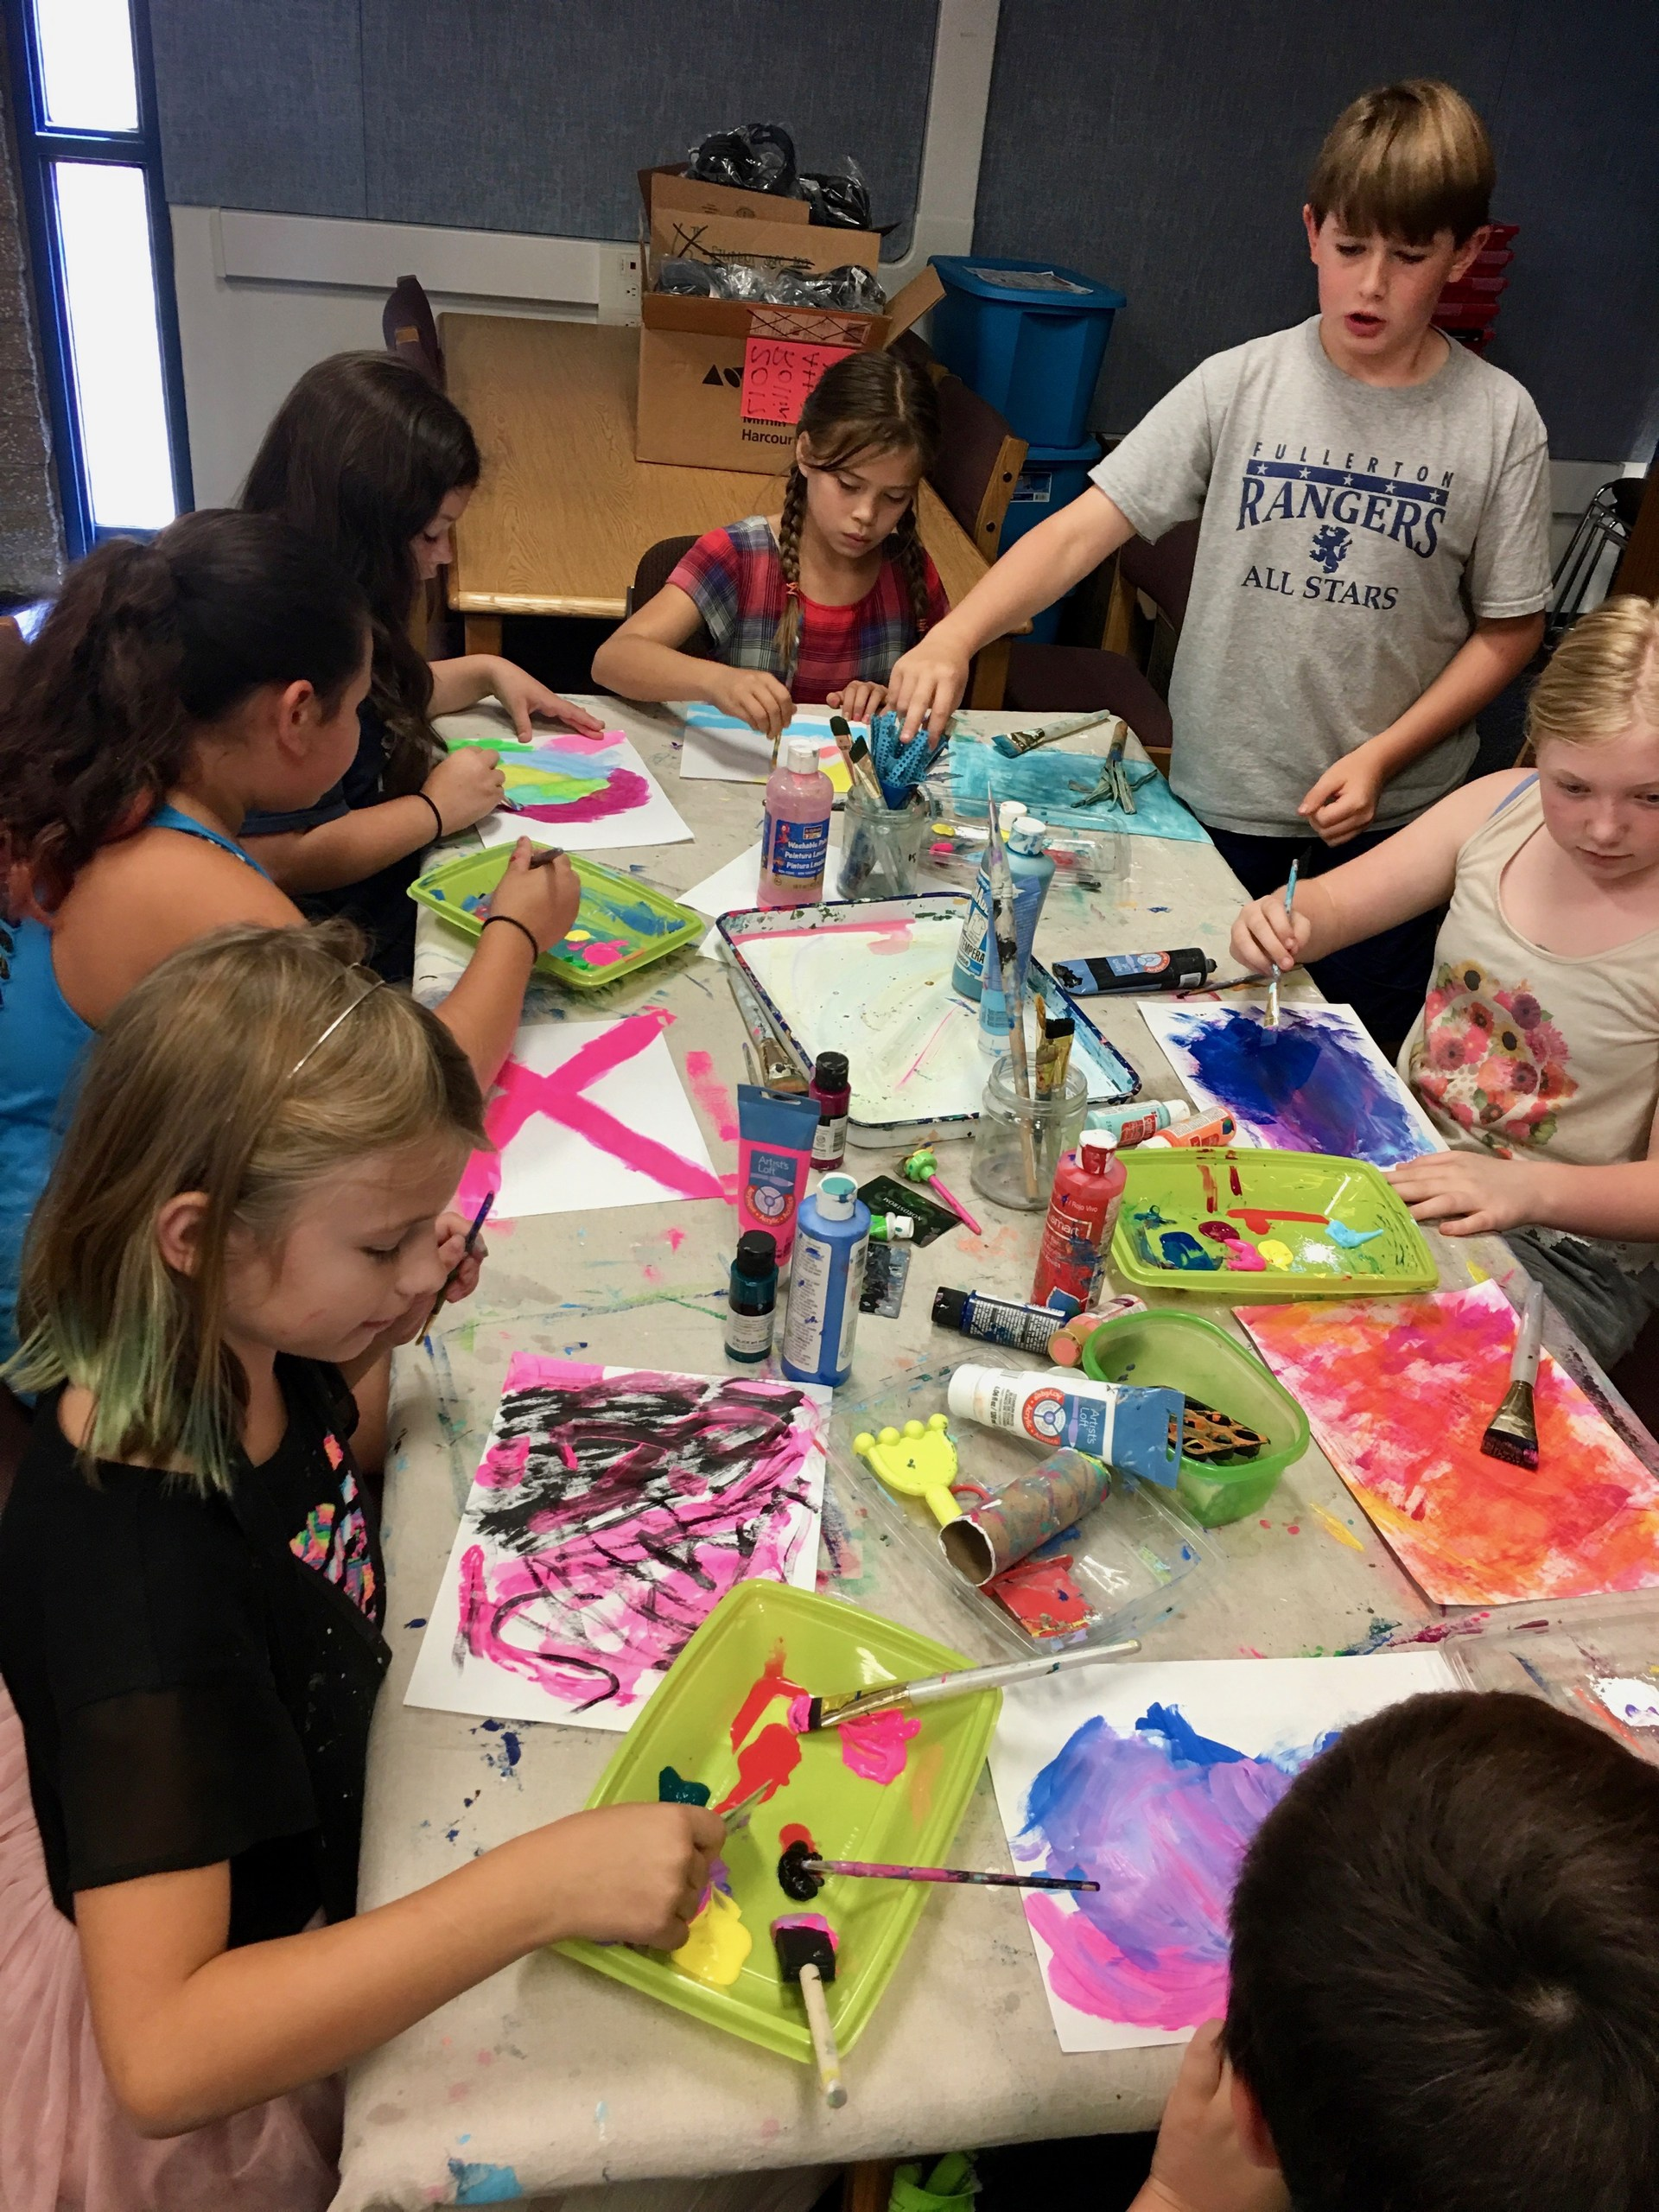 Students working on a painting project.